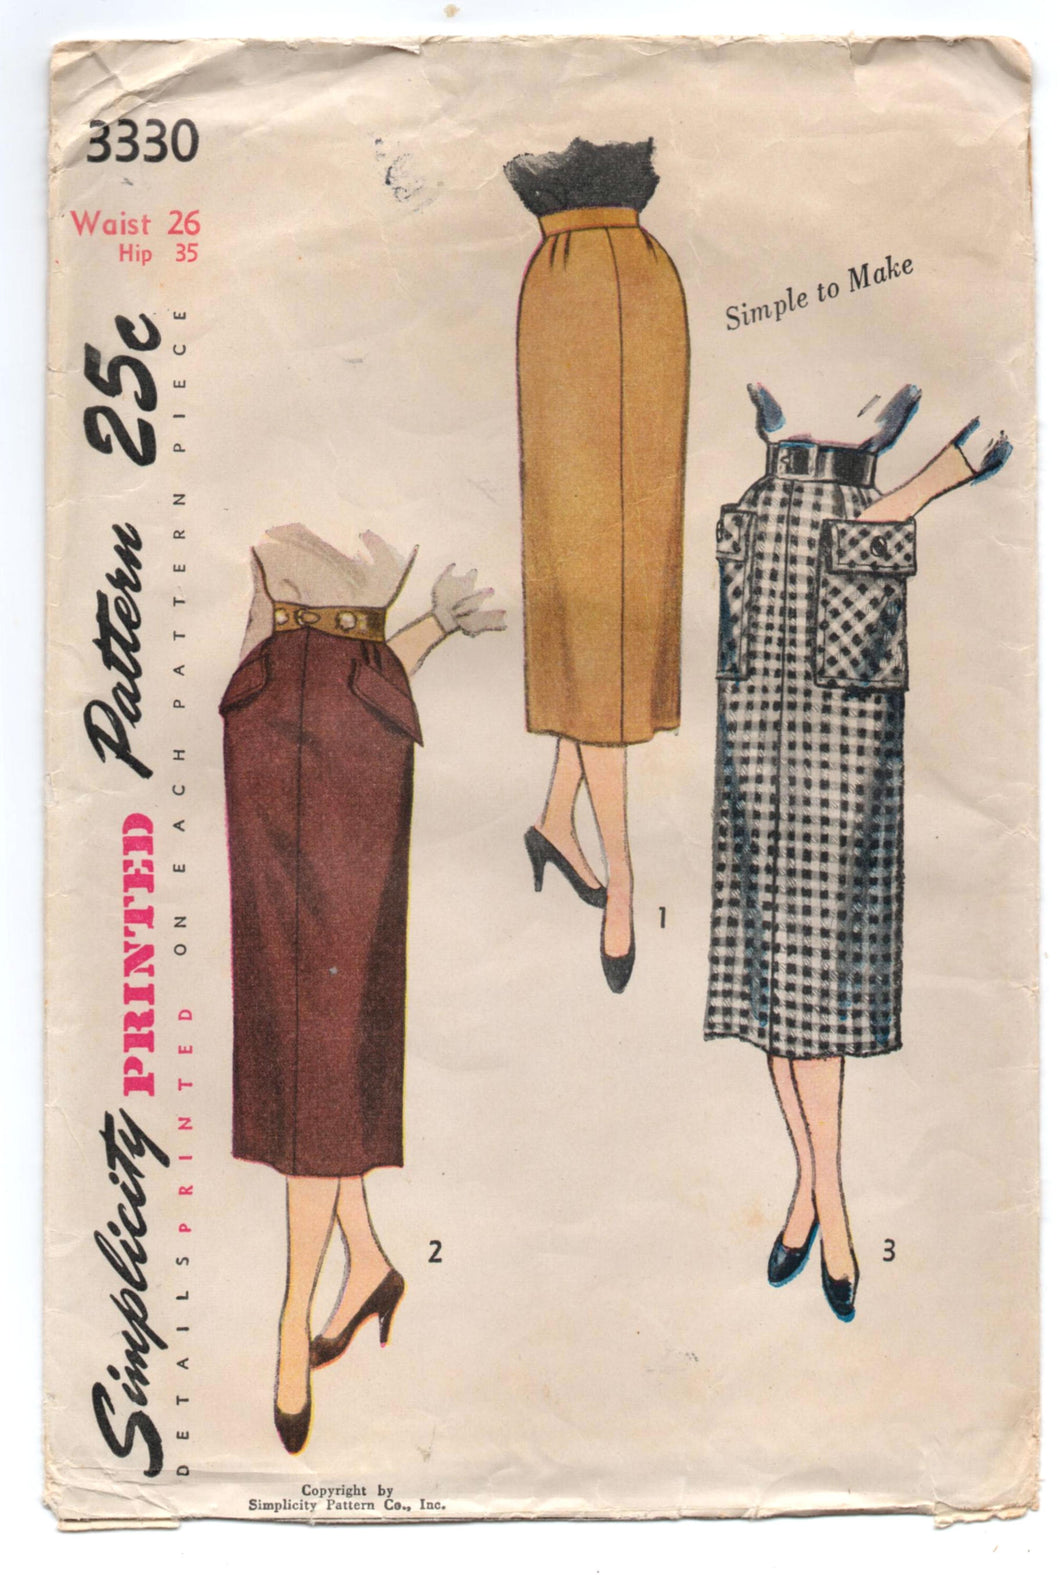 1950's Simplicity Slim Skirt with Pockets Pattern - Waist 26